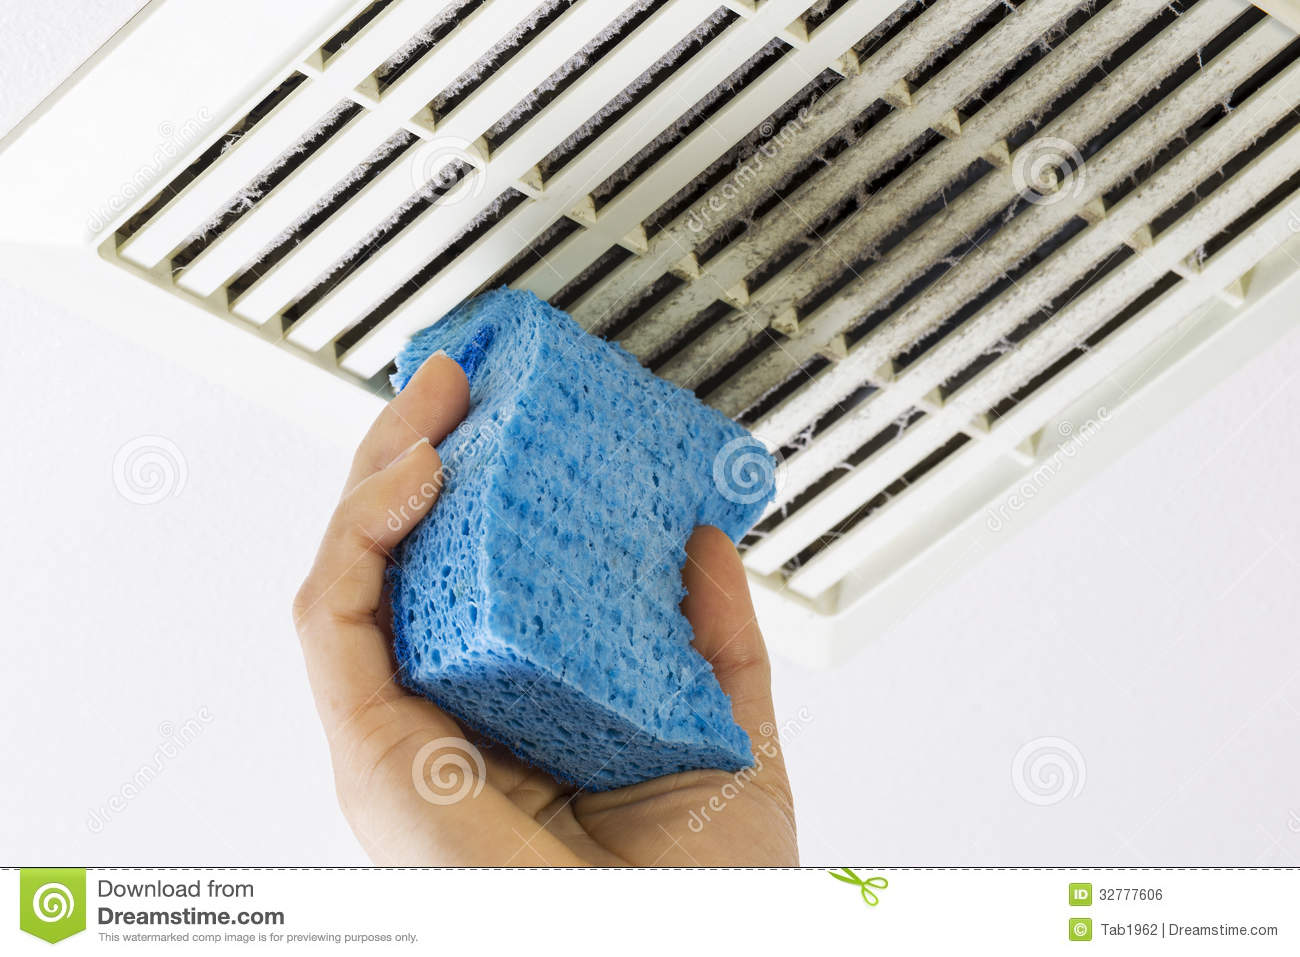 Bathroom Fan Cover Cleaning Bathroom Fan Vent Cover With Sponge Royalty Free